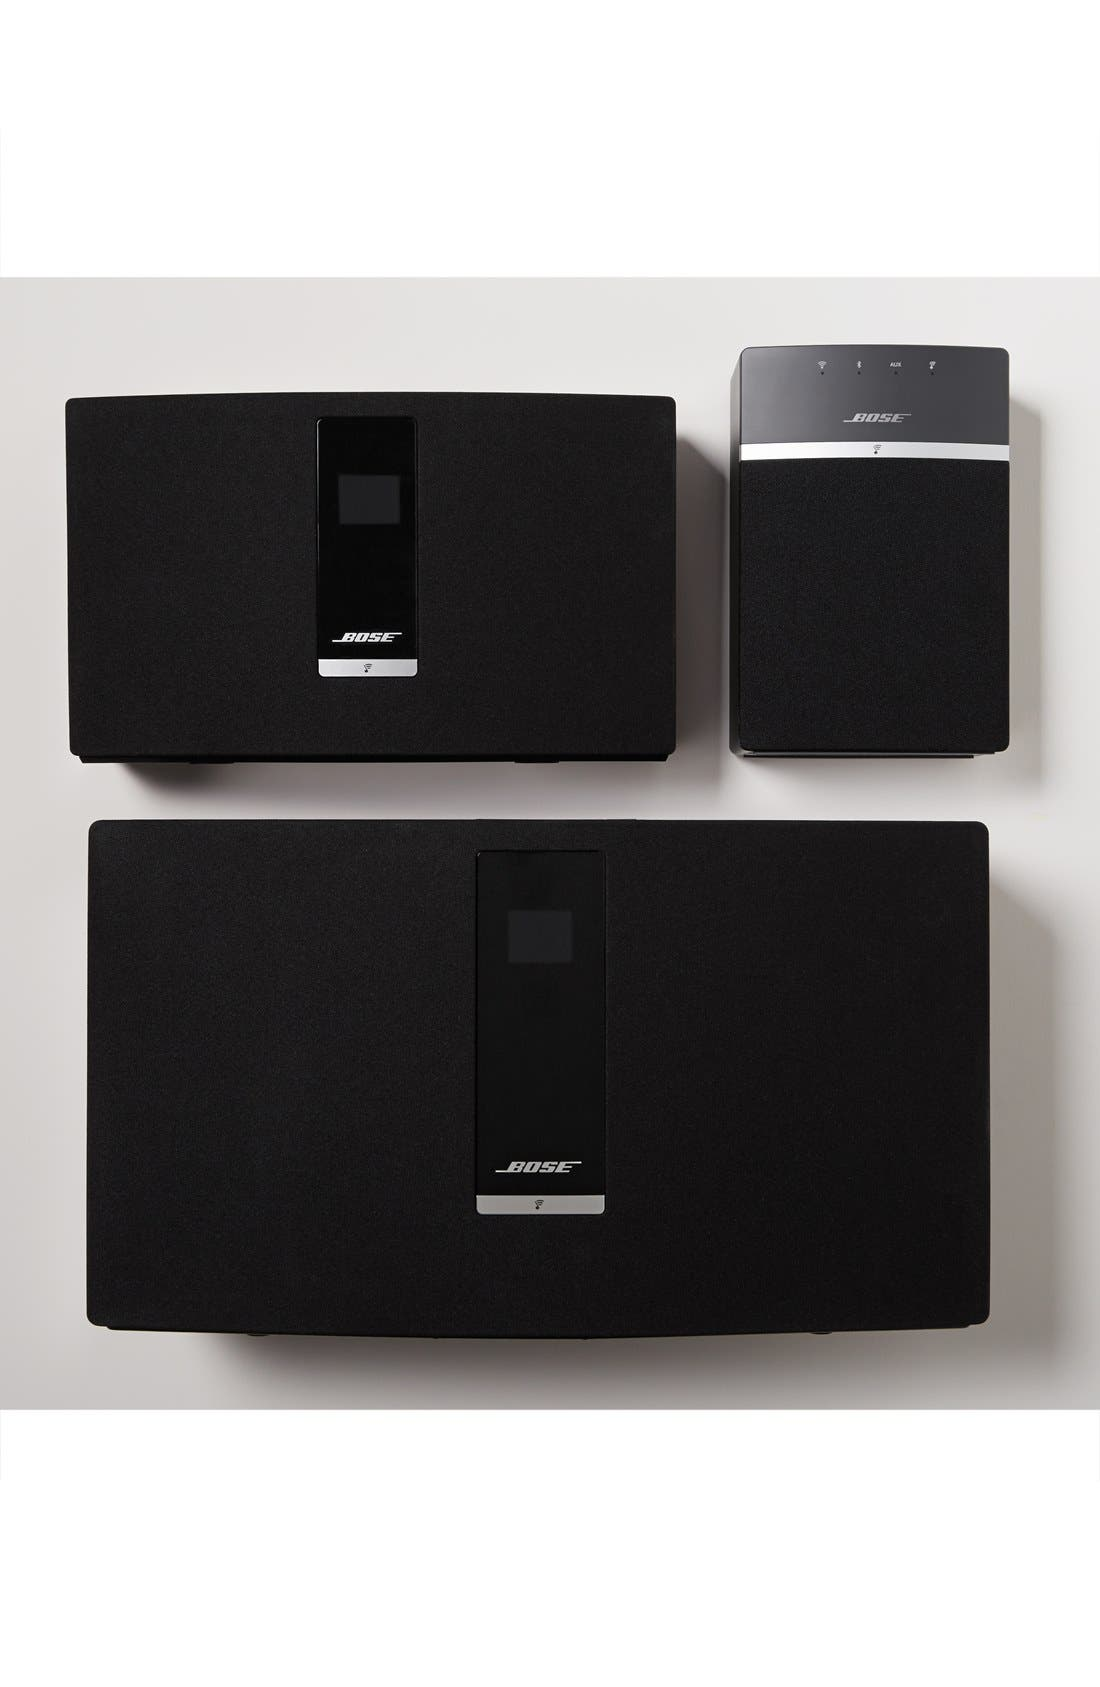 SoundTouch<sup>®</sup> 20 Series III Wireless Music System,                             Alternate thumbnail 5, color,                             BLACK